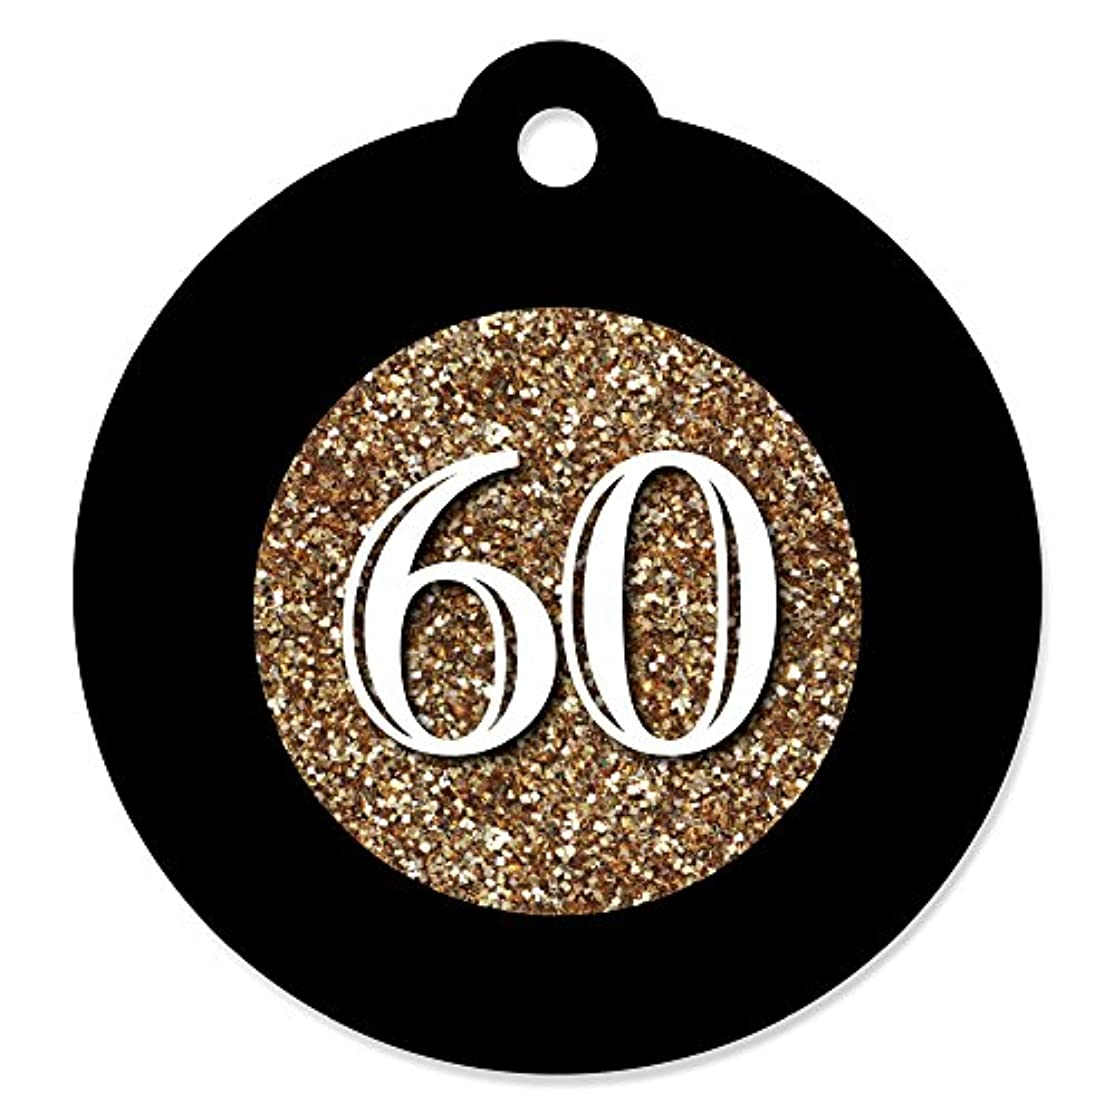 Adult 60th Birthday - Gold - Birthday Party Favor Gift Tags (Set of 20) jmkmjkbr2